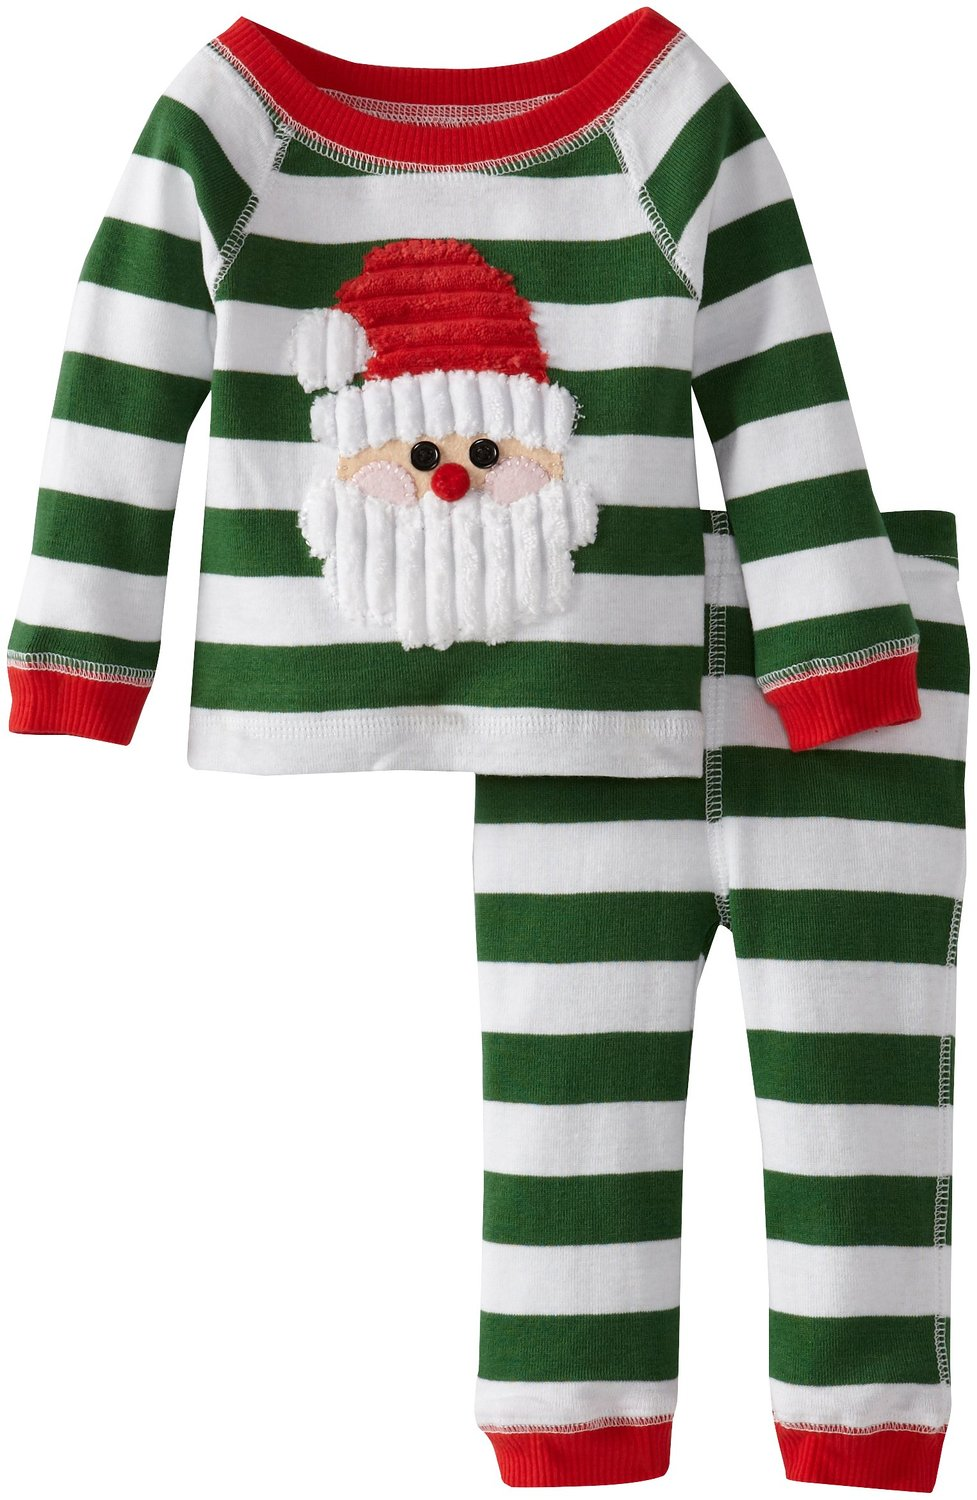 Infant Christmas Pajamas. It's the most wonderful time of the year! The holidays are even more fun when you have little ones to help celebrate the season.